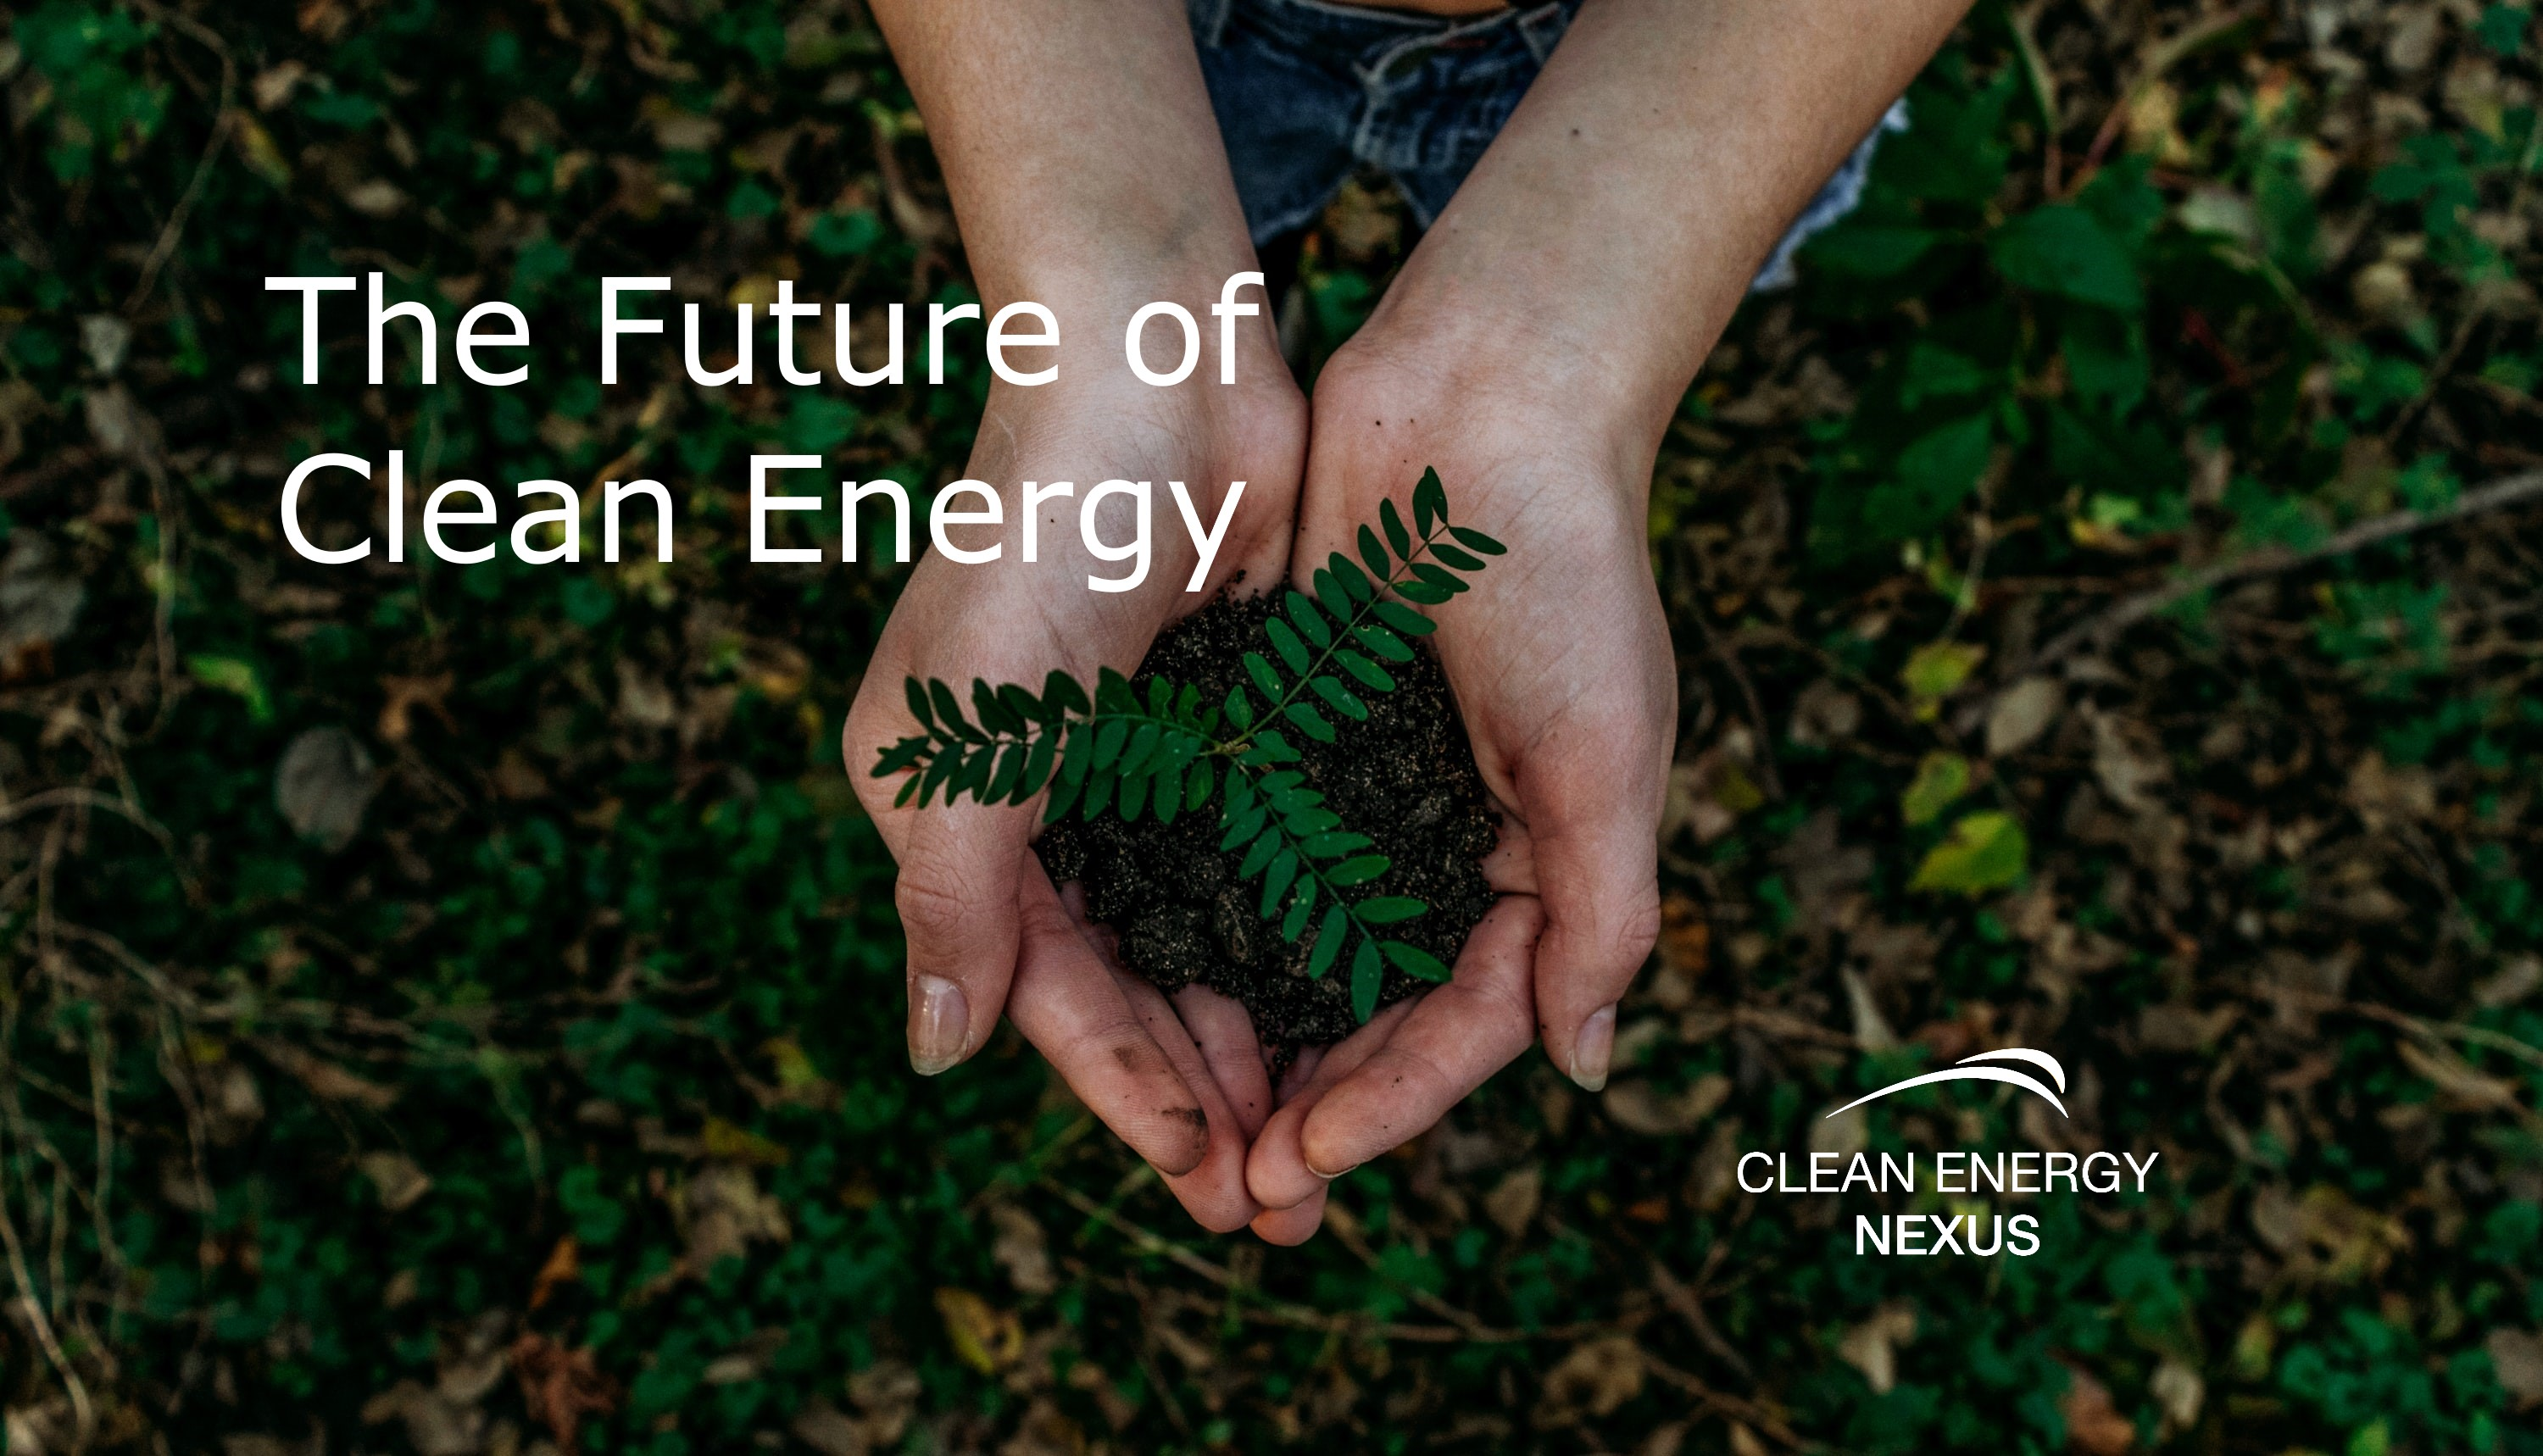 The Future of Clean Energy